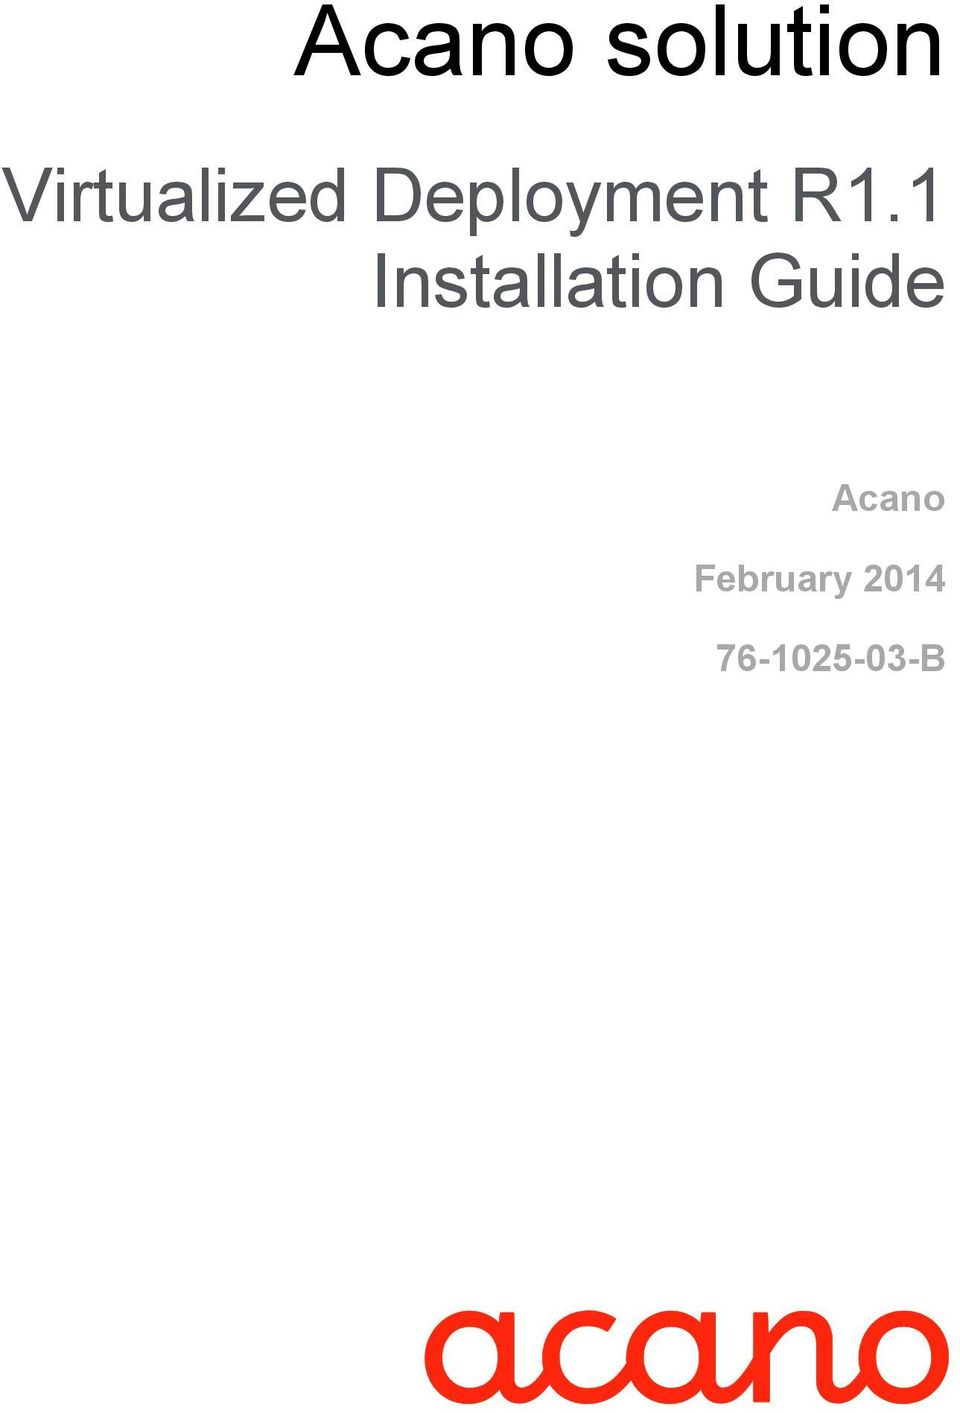 R1.1 Installation Guide